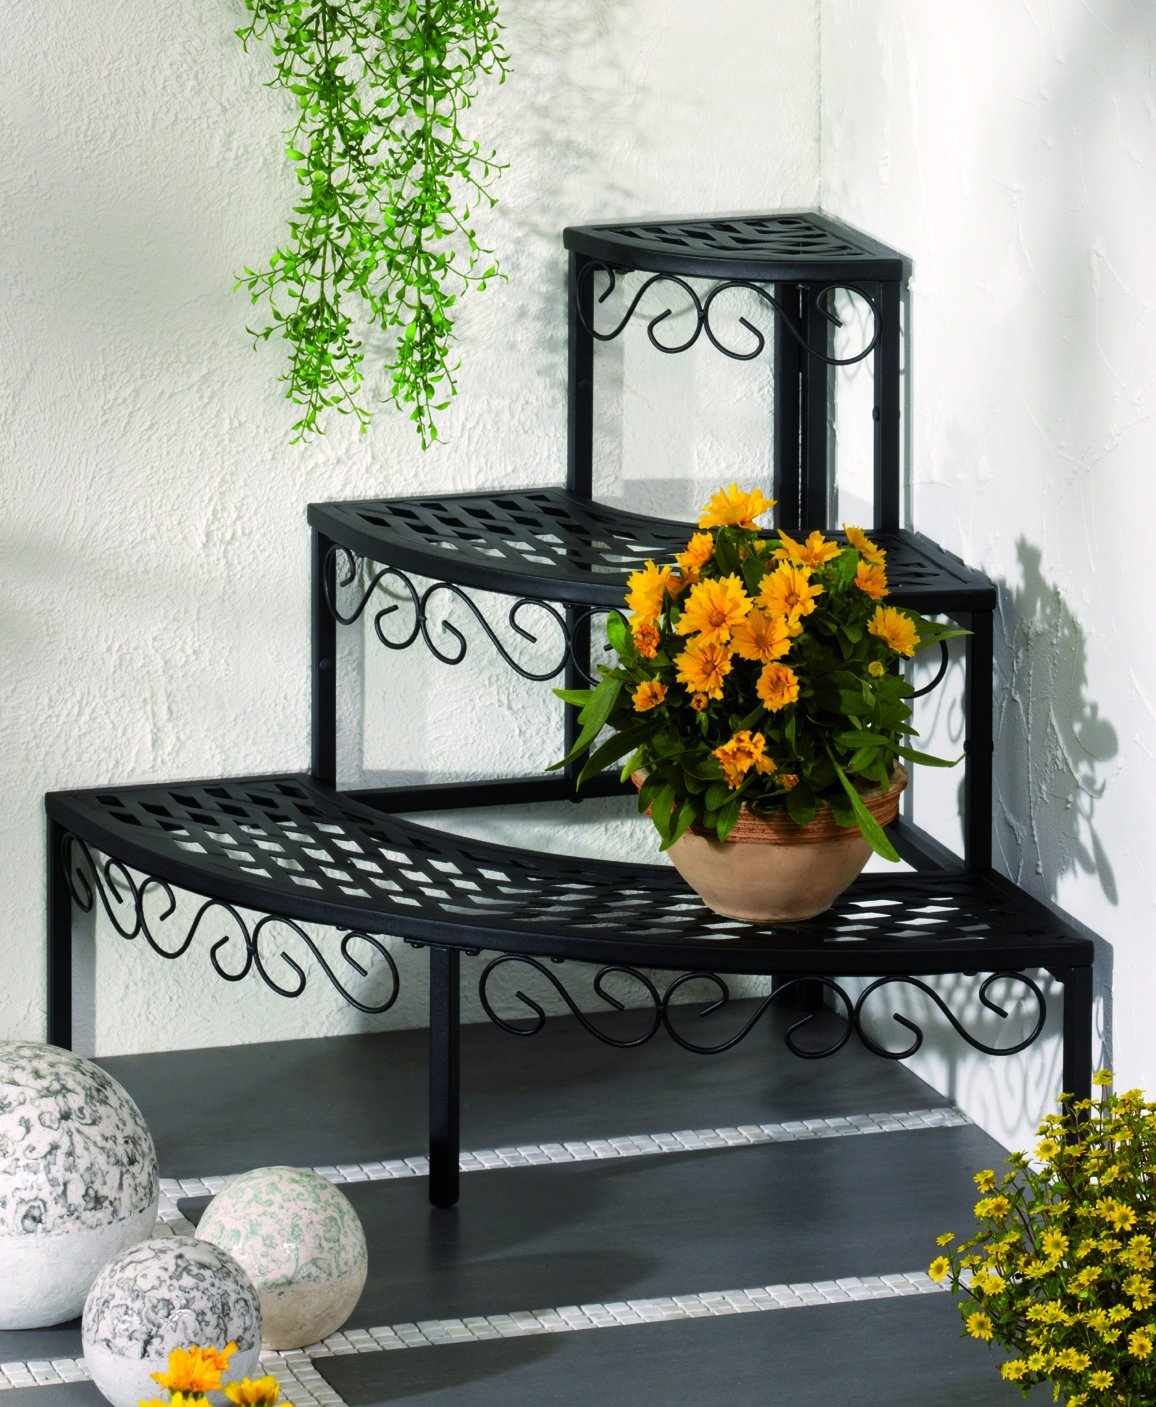 FRESH AIR FOREVER 3 Tier Plant Modern Metal Stand Rack for Displaying Plant or Multi Flower Pot by FRESH AIR FOREVER